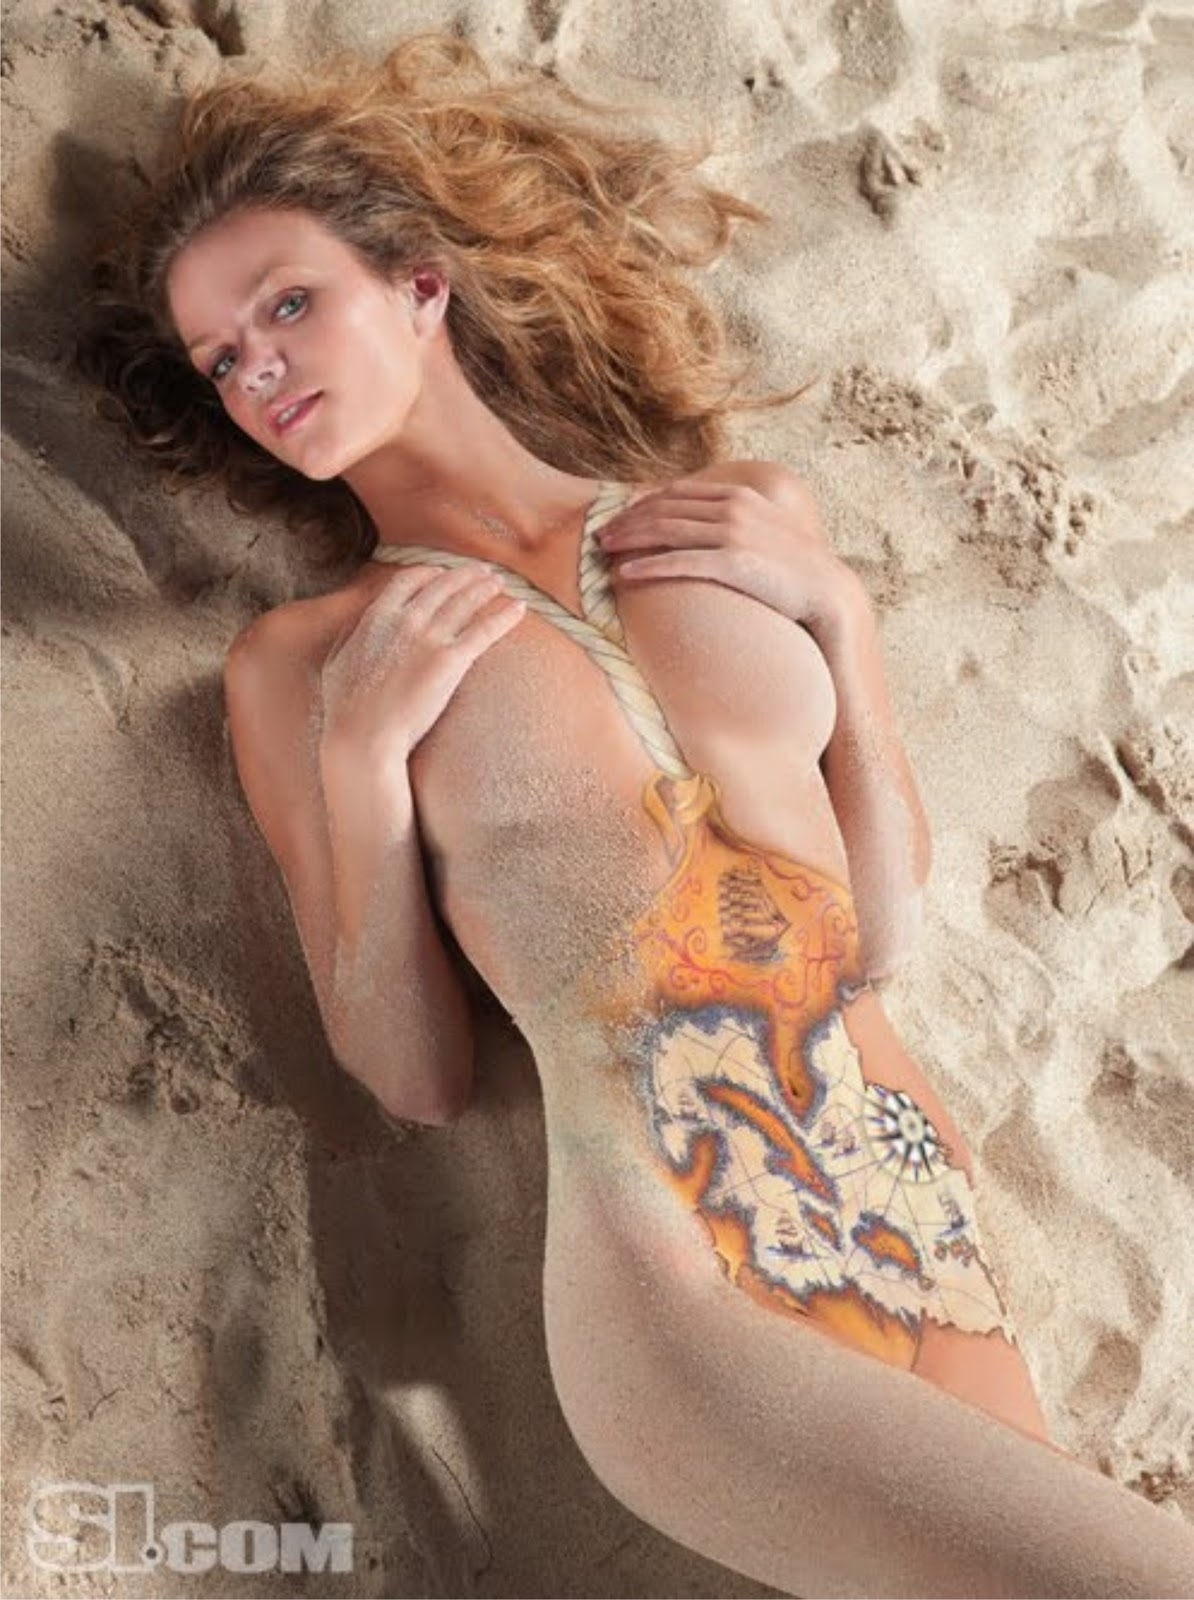 Brooklyn decker's nude body painting in si